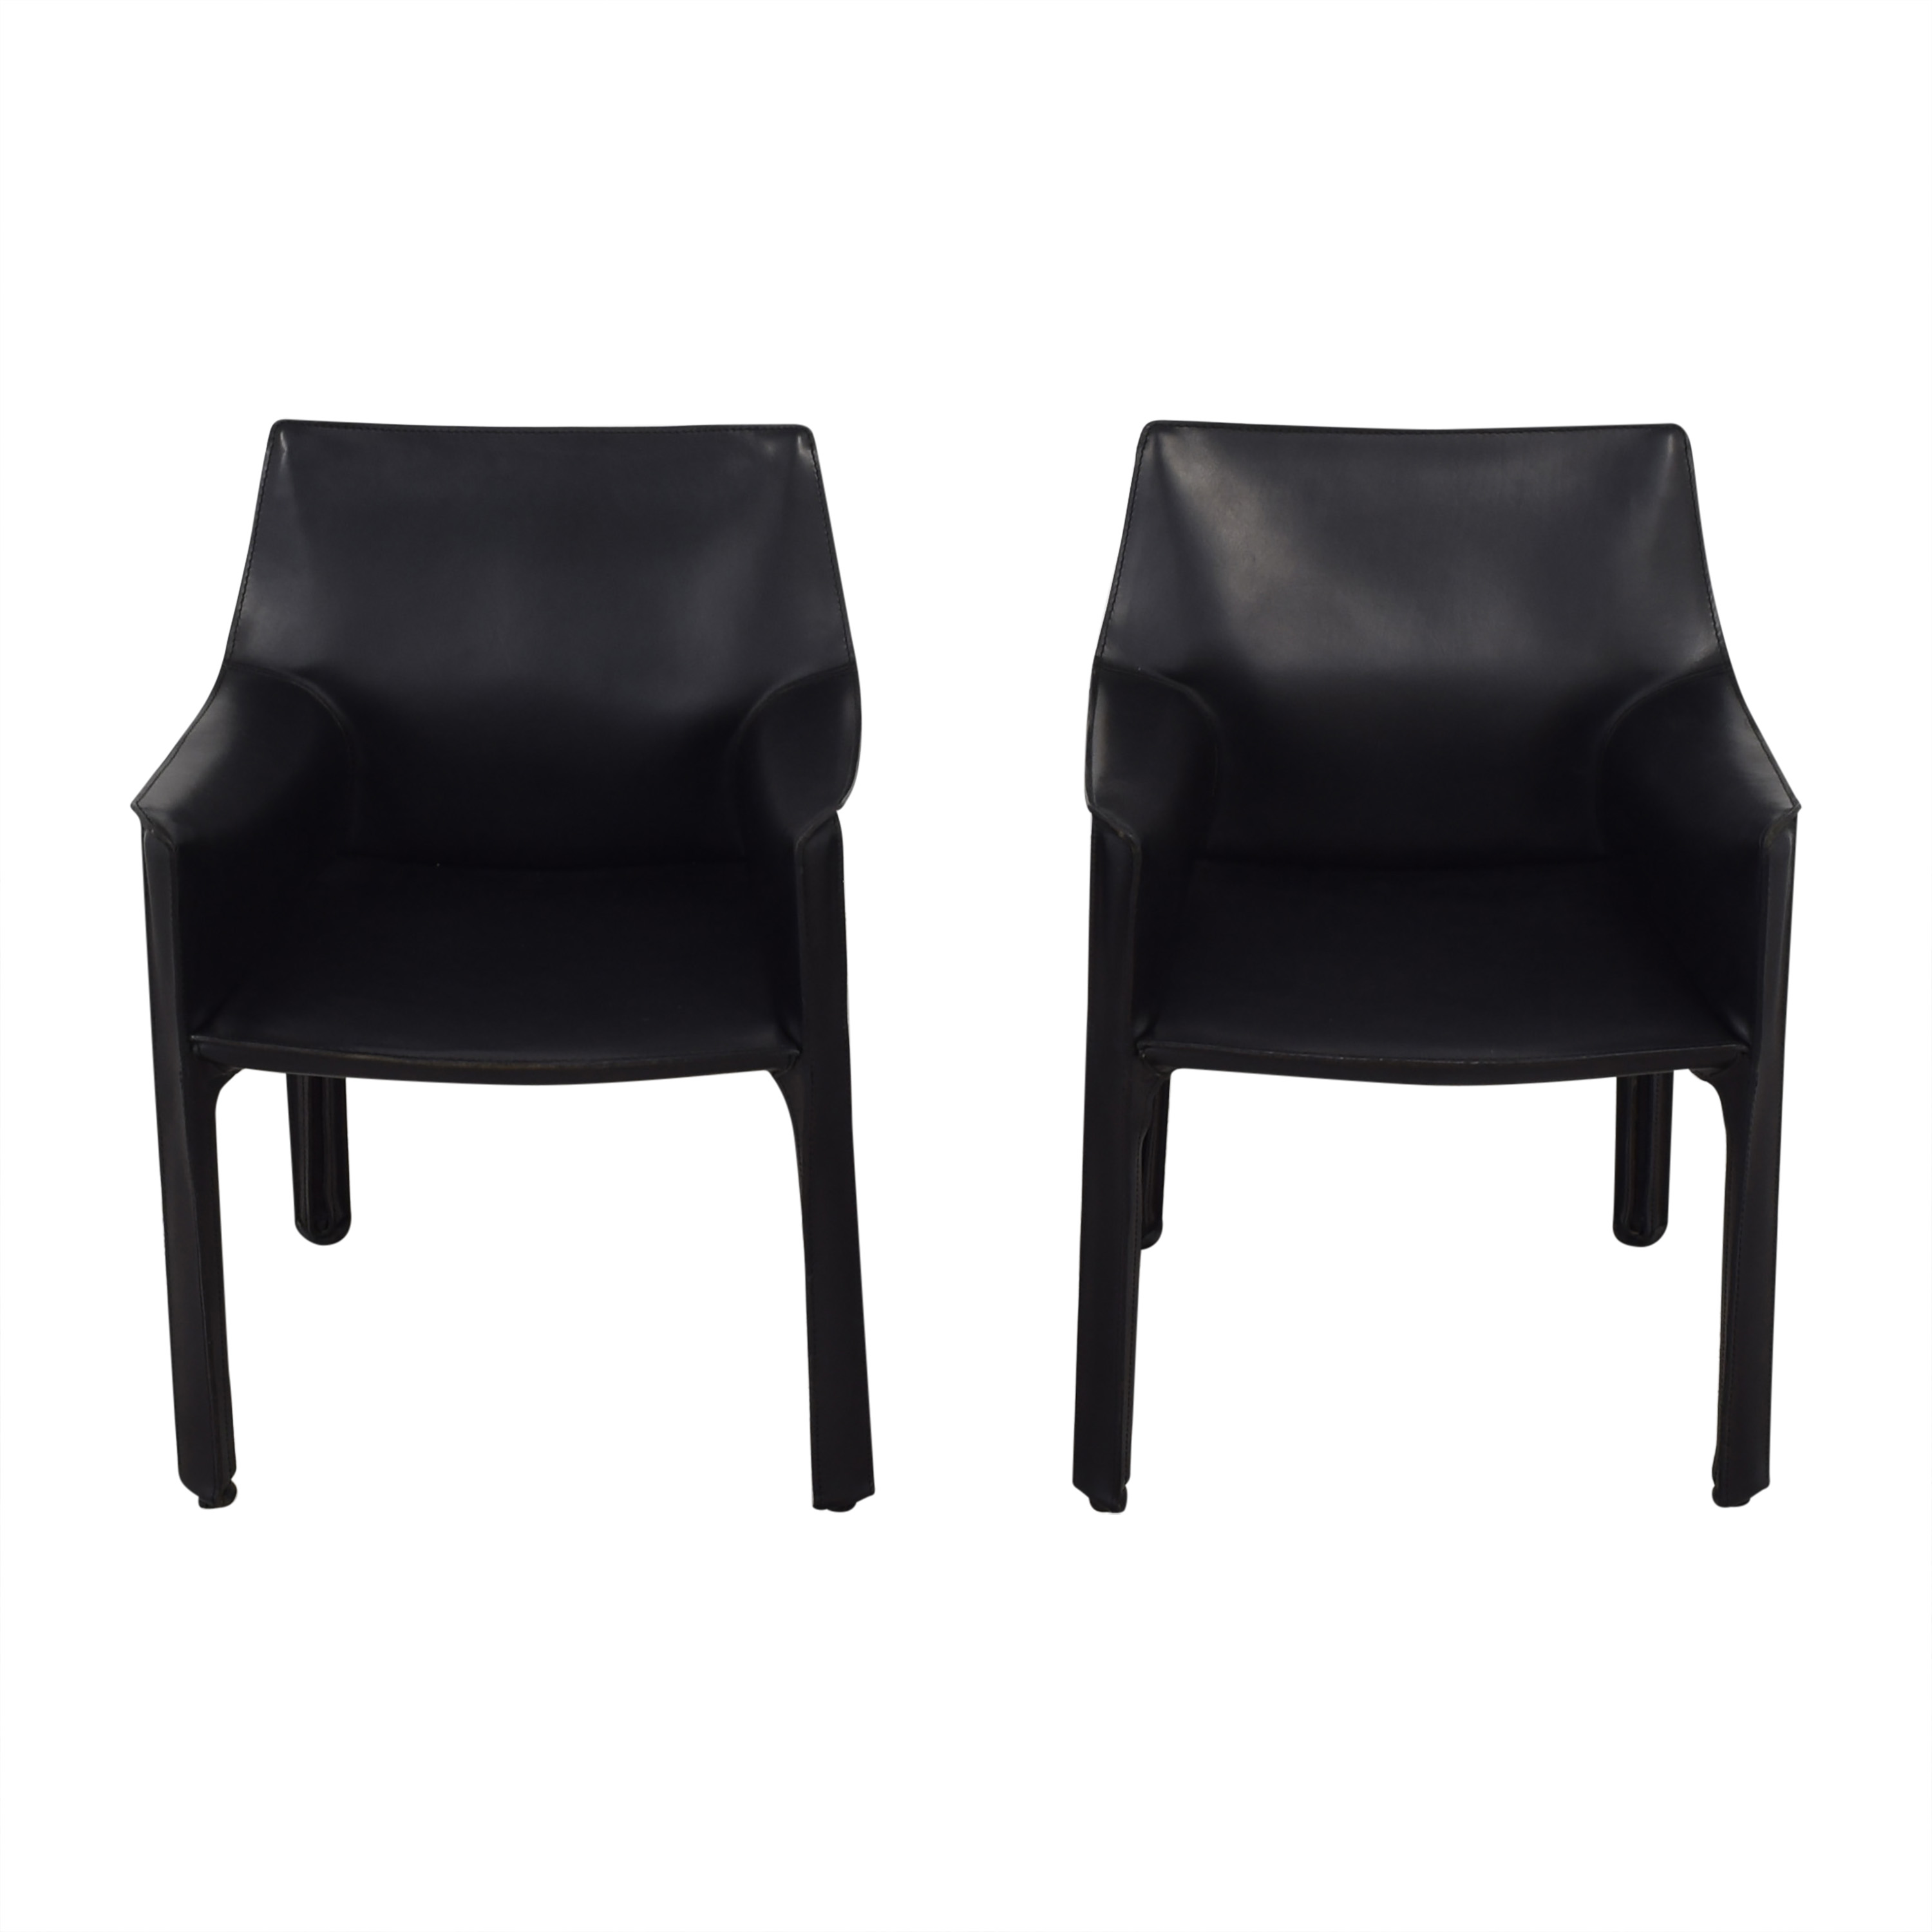 Cassina Cassina Mario Bellini Leather Cab Chairs Dining Chairs